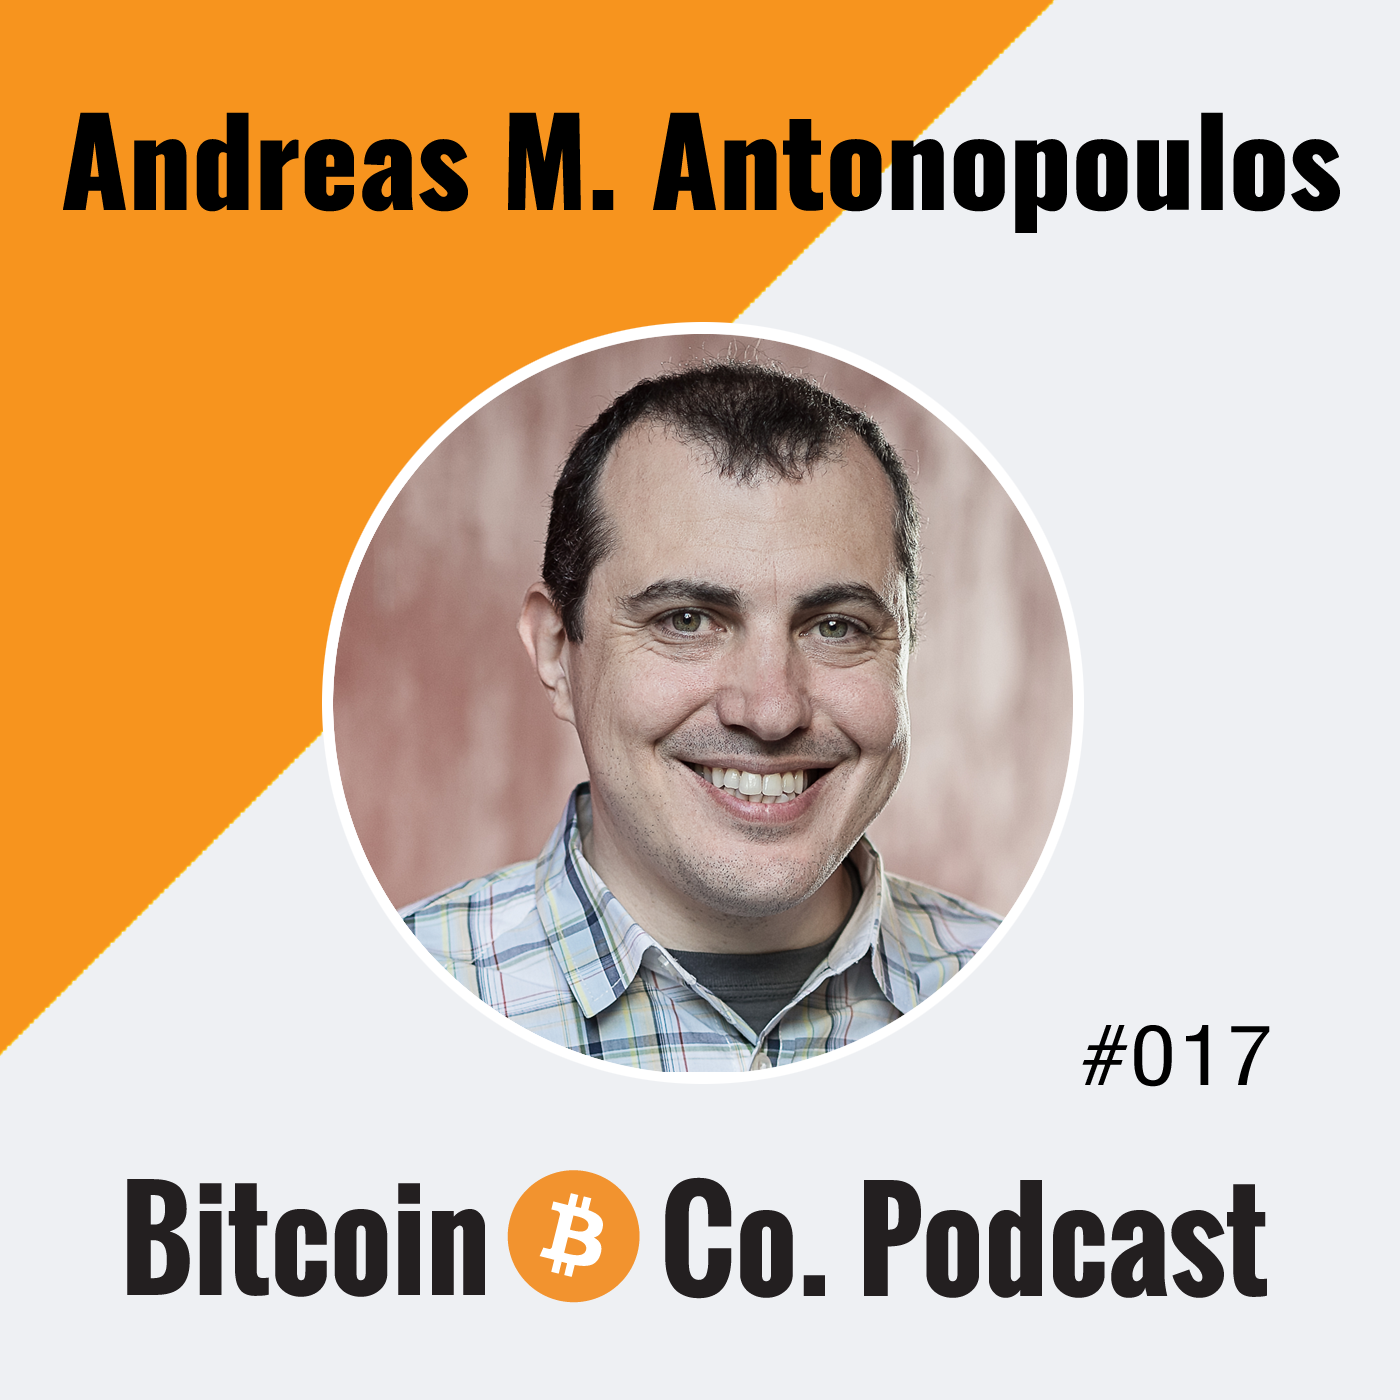 Podcast with Andreas M. Antonopoulos 2019